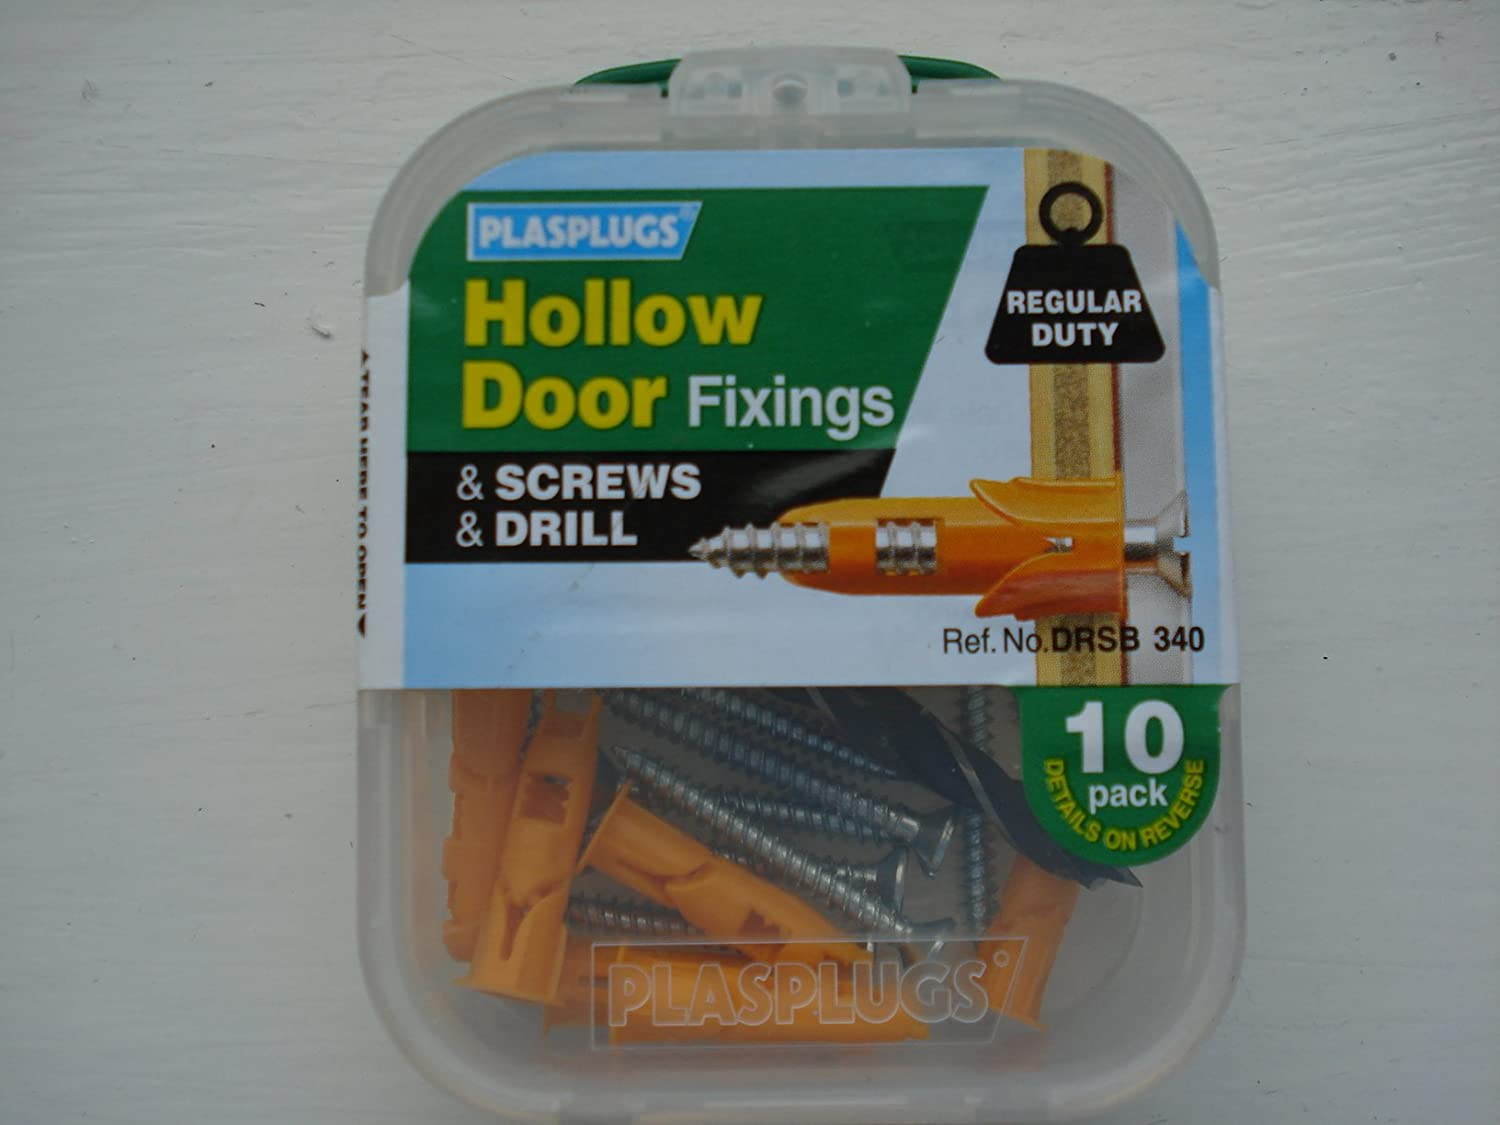 Plasplugs Hollow Door Fixings \u0026 Screws \u0026 Drill 10 Pack Amazon.co.uk DIY \u0026 Tools & Plasplugs Hollow Door Fixings \u0026 Screws \u0026 Drill 10 Pack: Amazon.co.uk ...